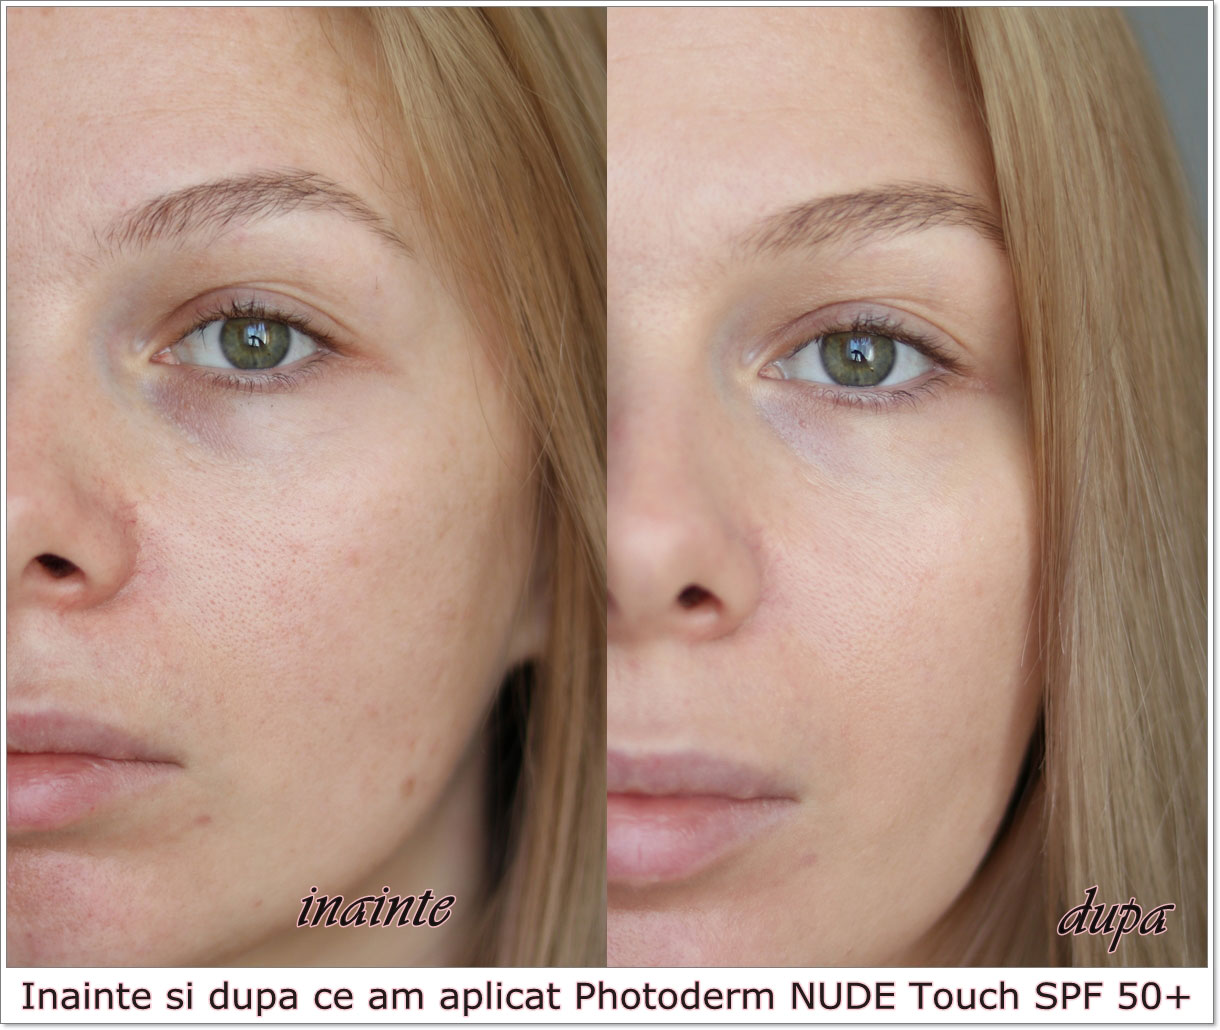 BIODERMA.Photoderm.before.and.after